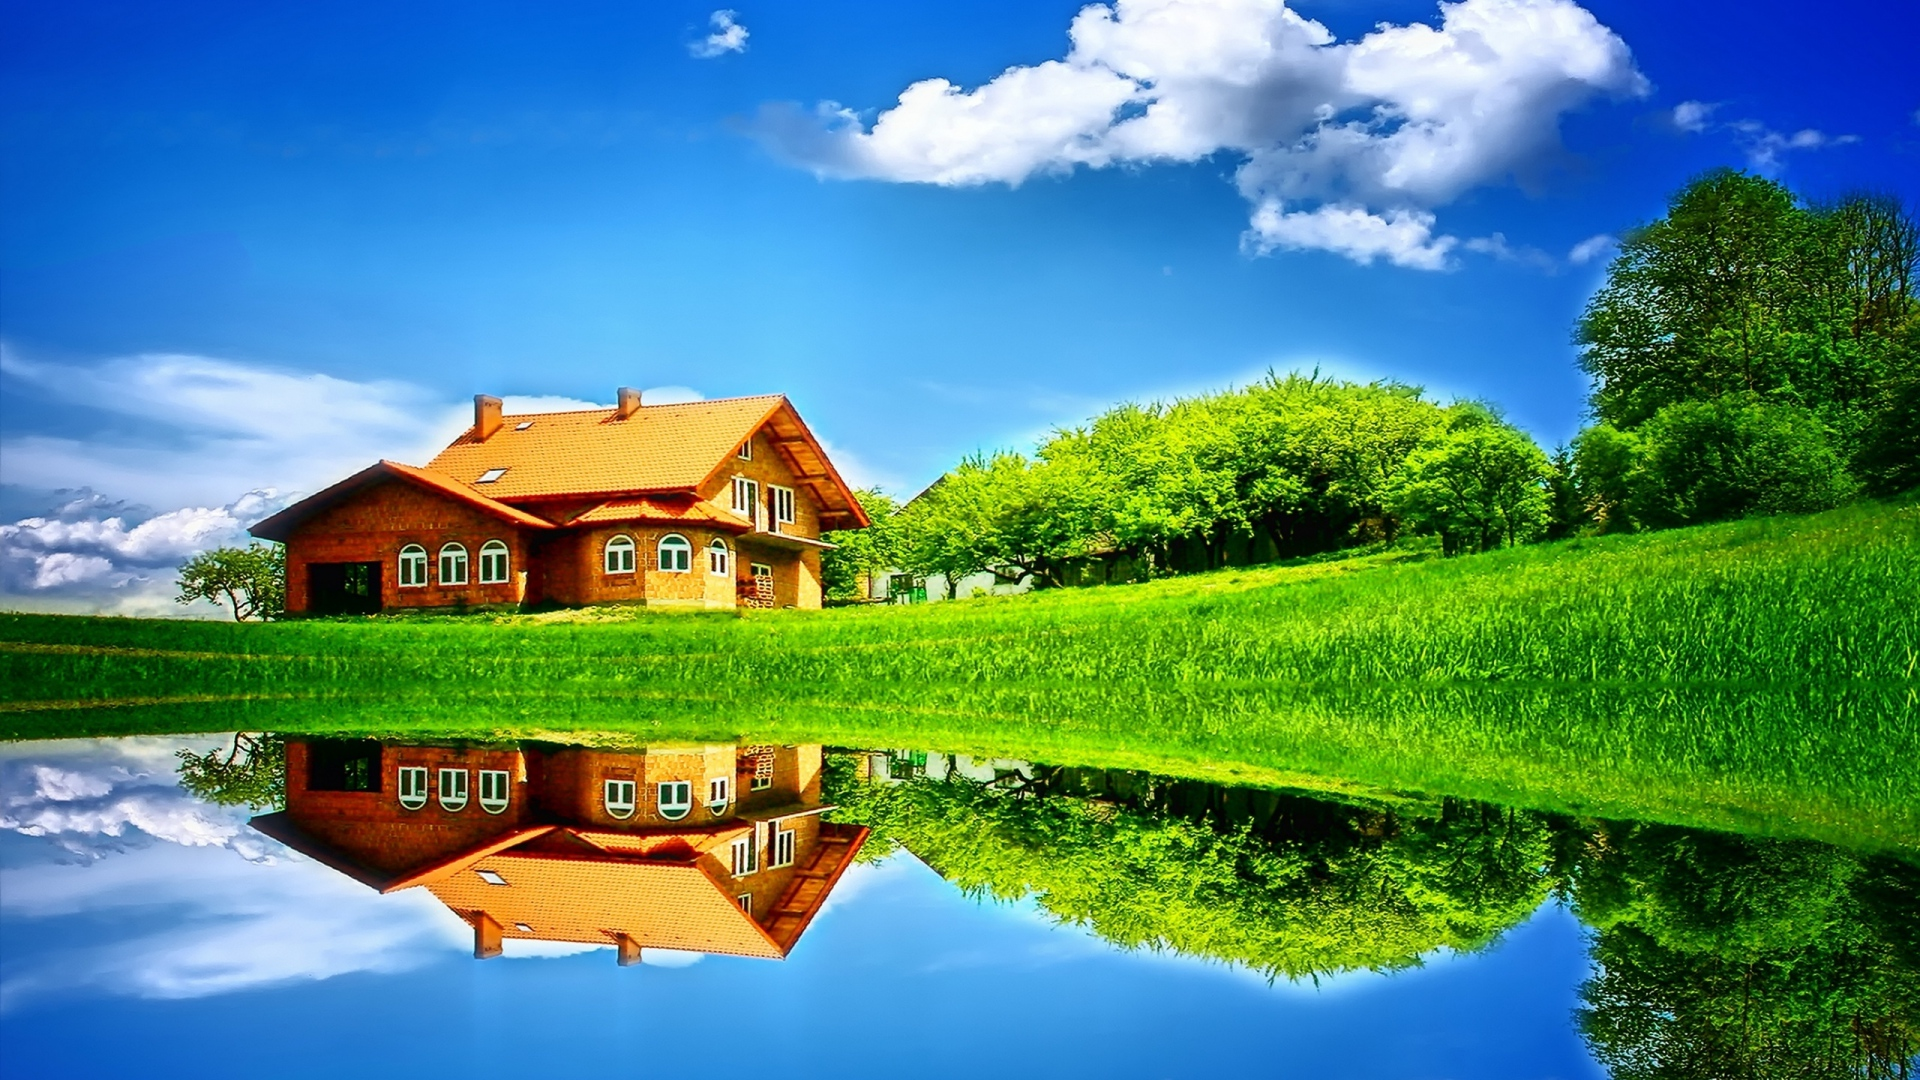 download wallpaper 1920x1080 house, meadow, glade, pond, green